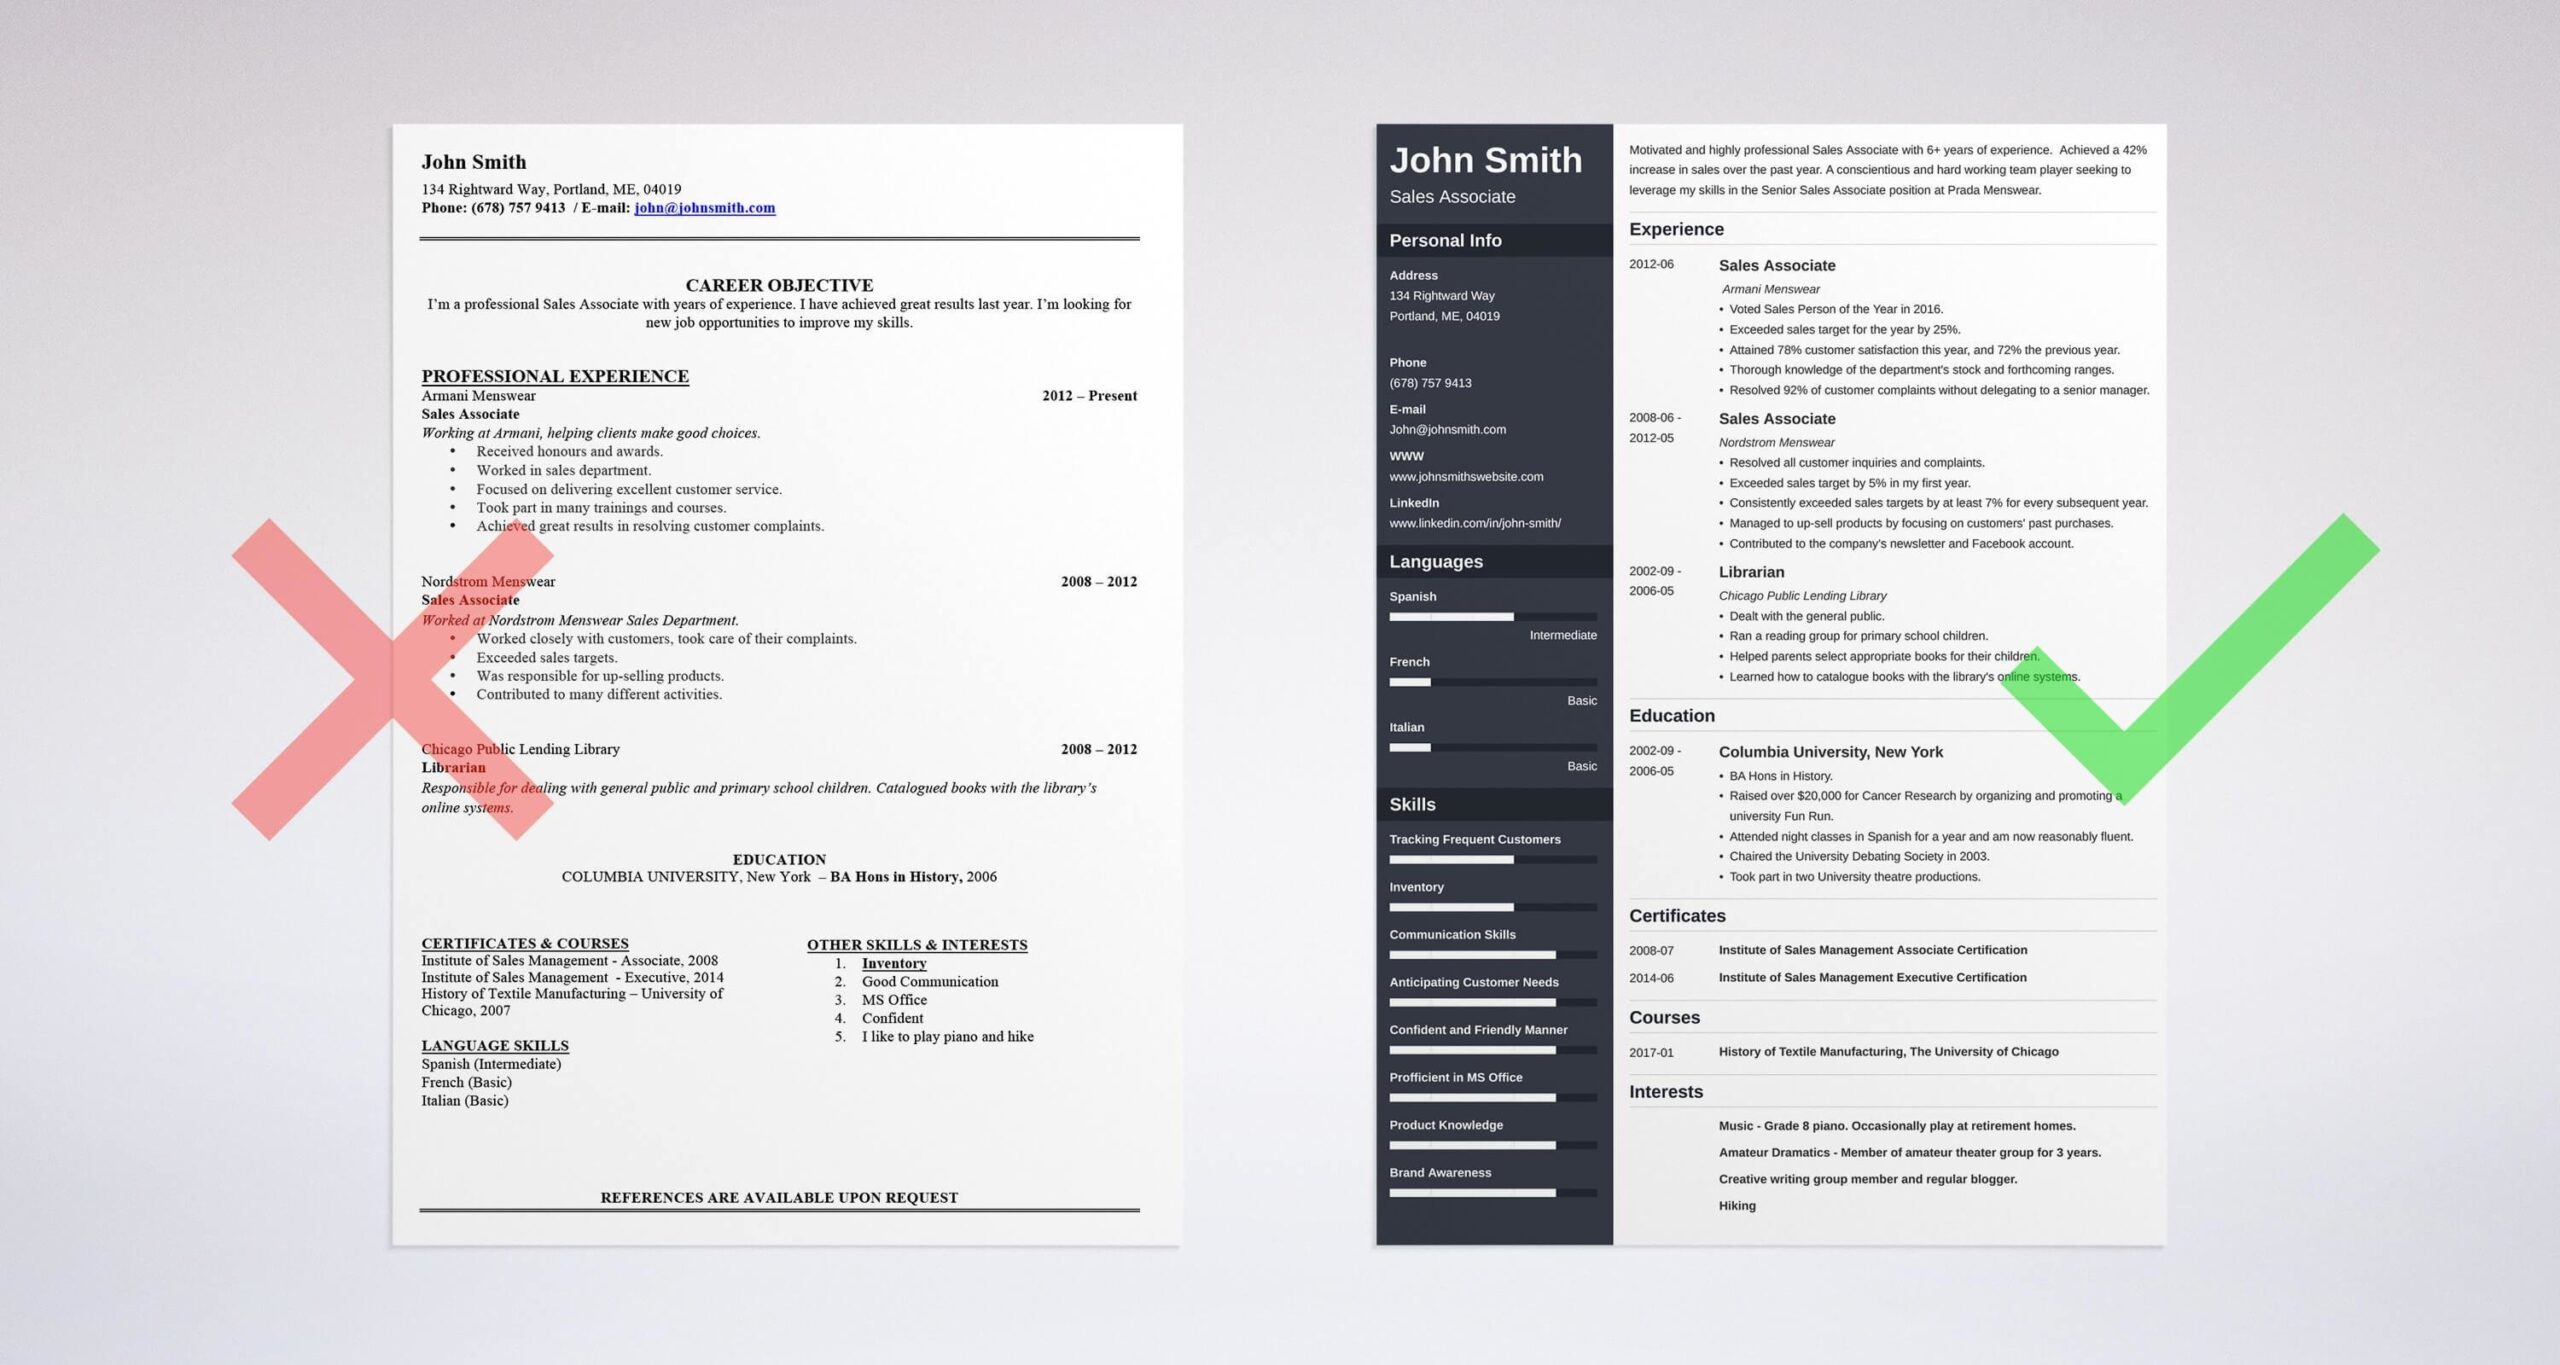 professional resume summary examples statements job for on template dark research Resume Job Summary For Resume